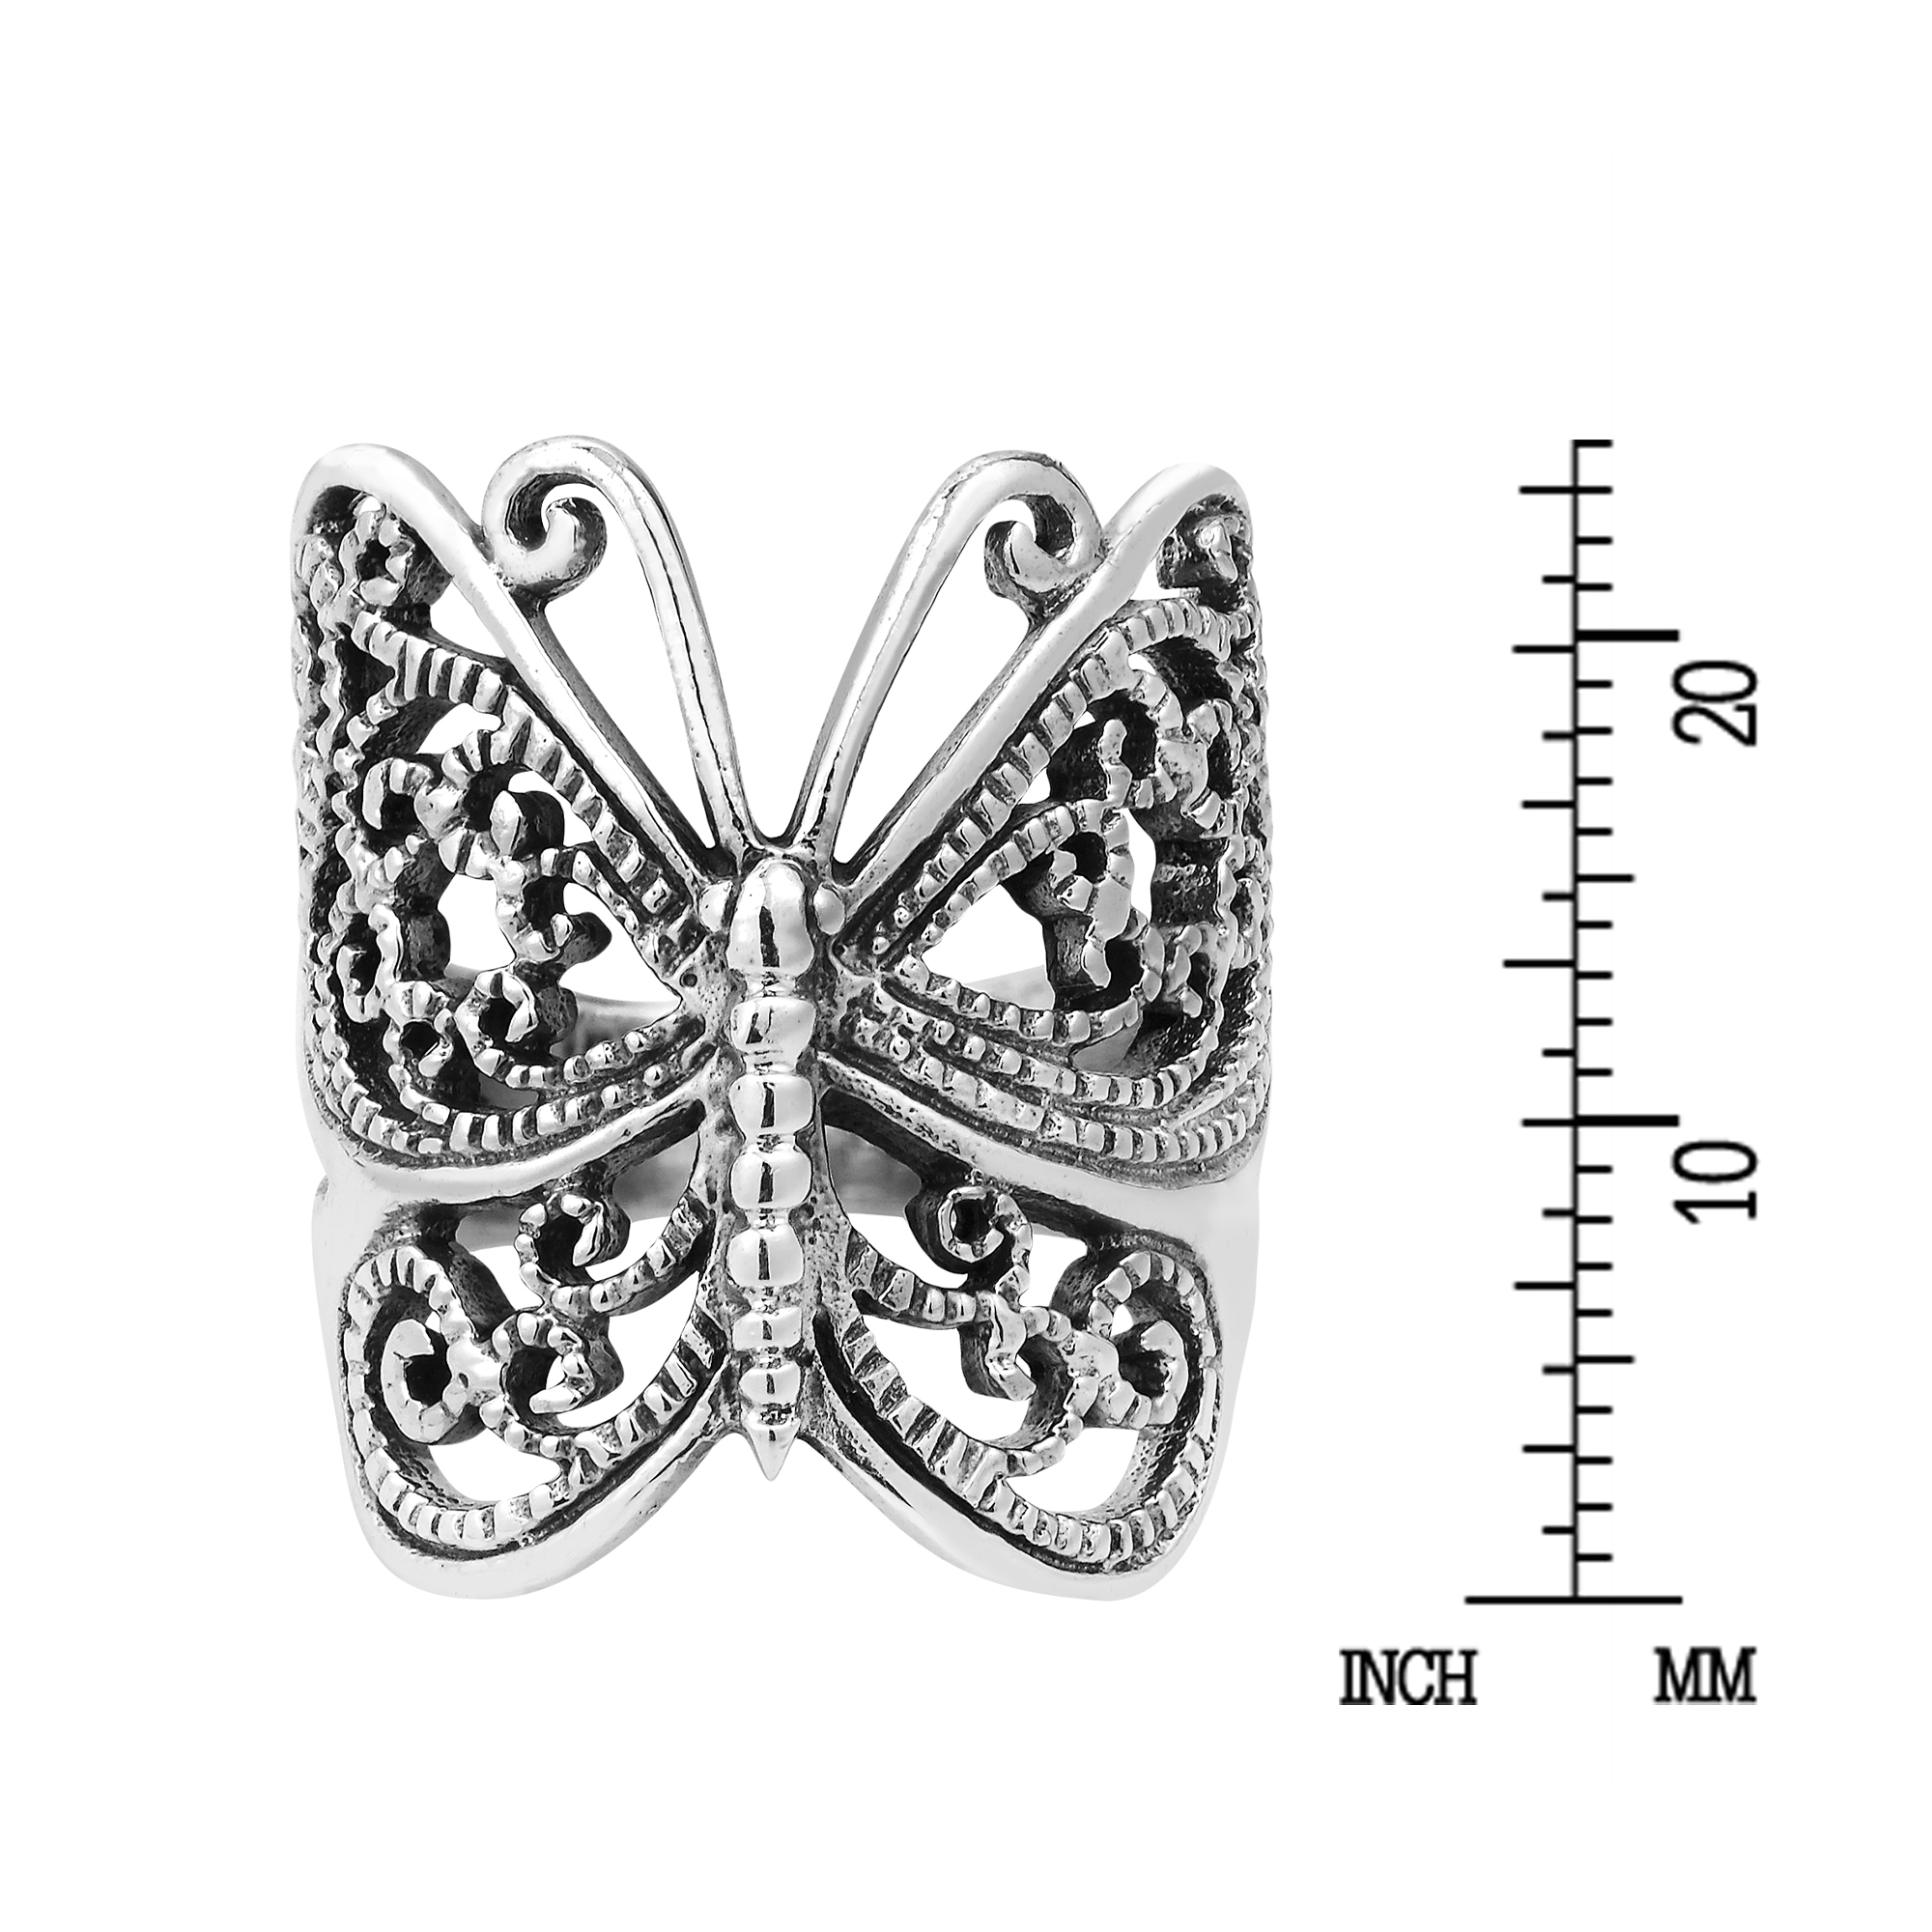 Best Wing Jewelry .925 Sterling SilverButterfly Childrens Stud Earrings with Plastic Part